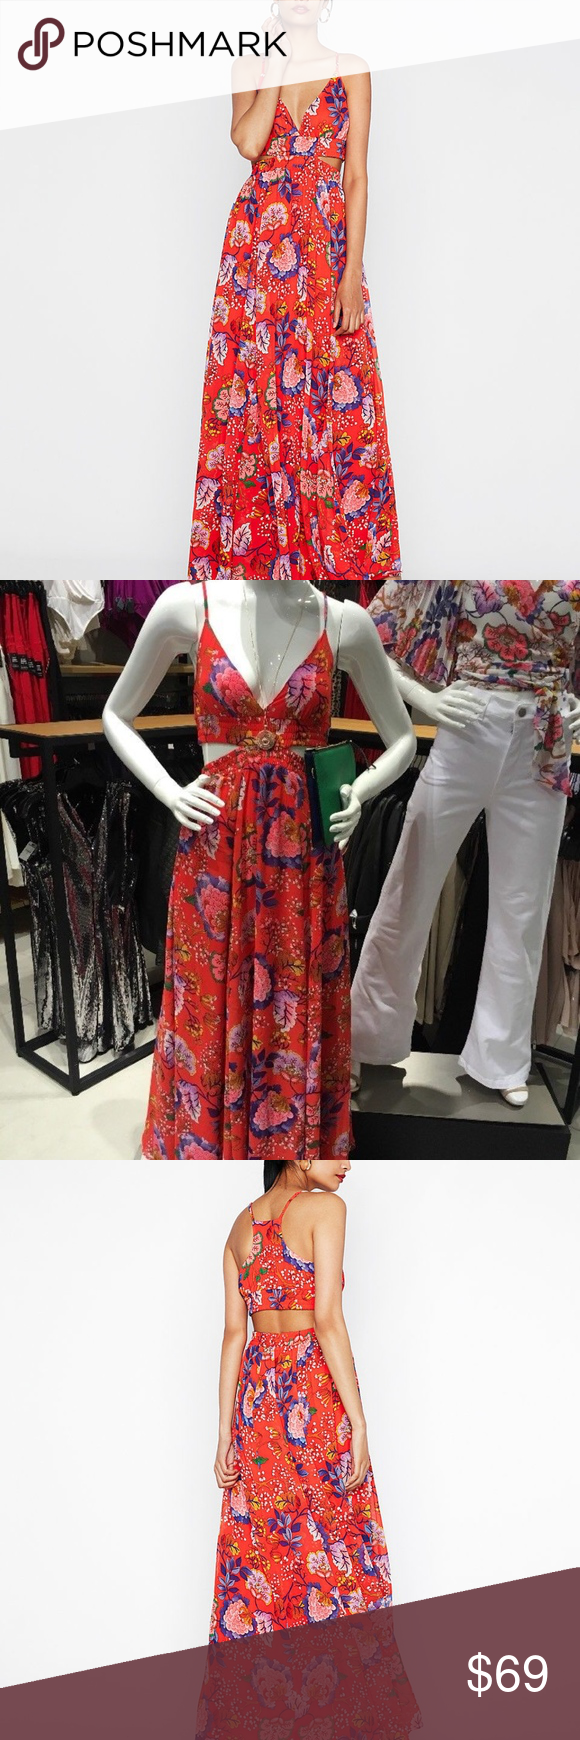 Nwt express floral side cutout maxi dress printed boutique my